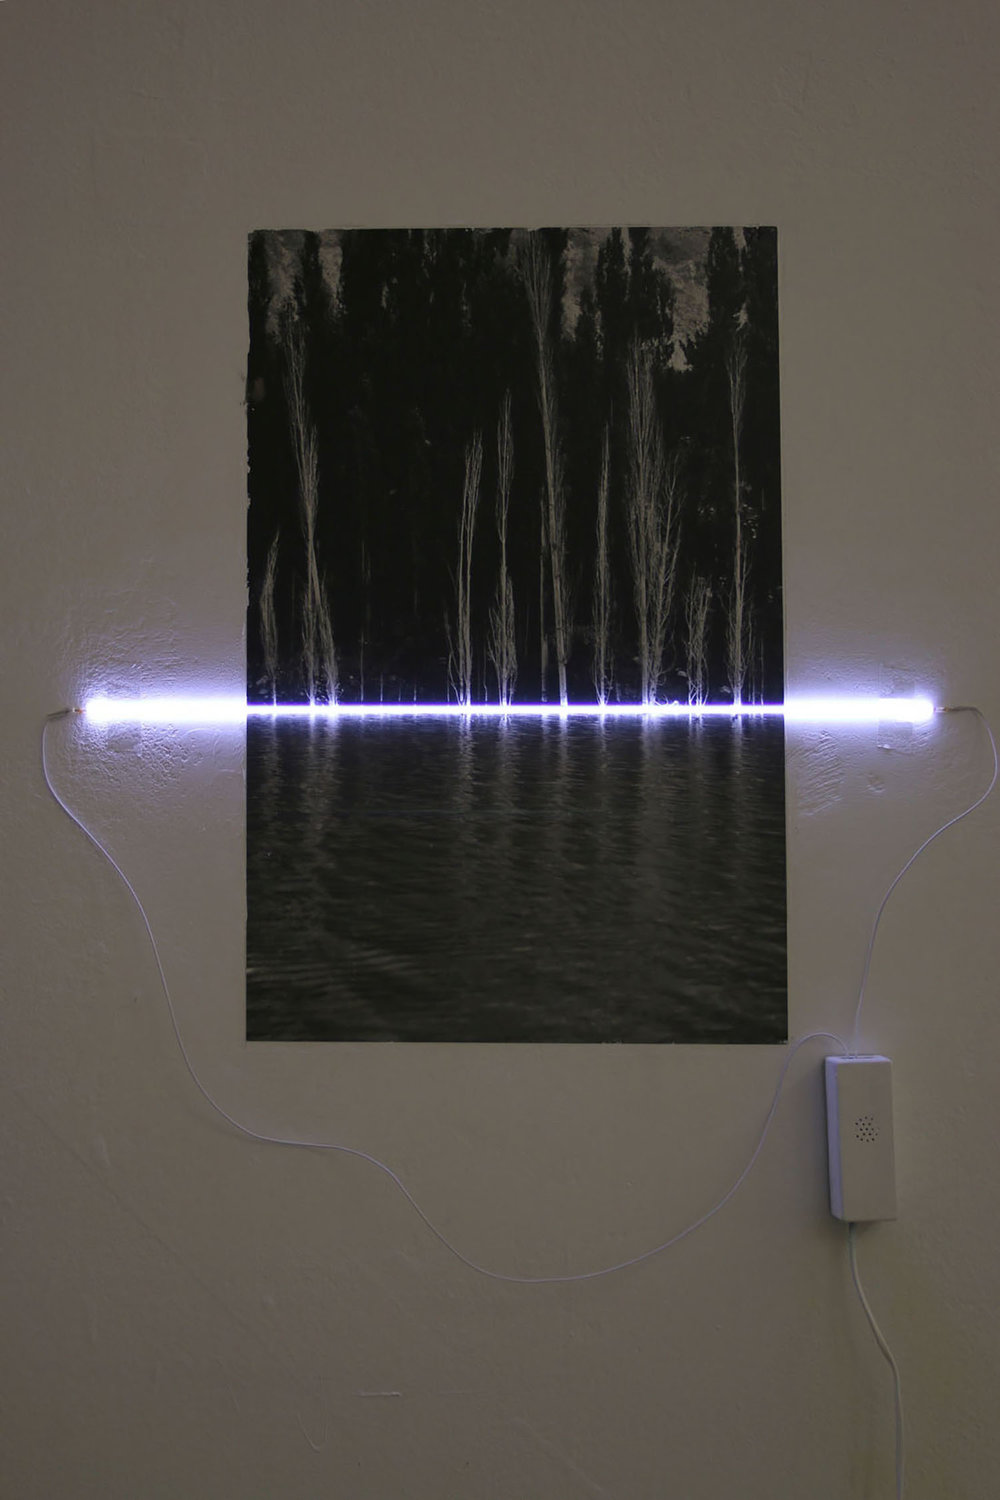 Iqra Tanveer  Fall 2017 Inkjet print transfer on wall, cathode light 30 x 45 cm